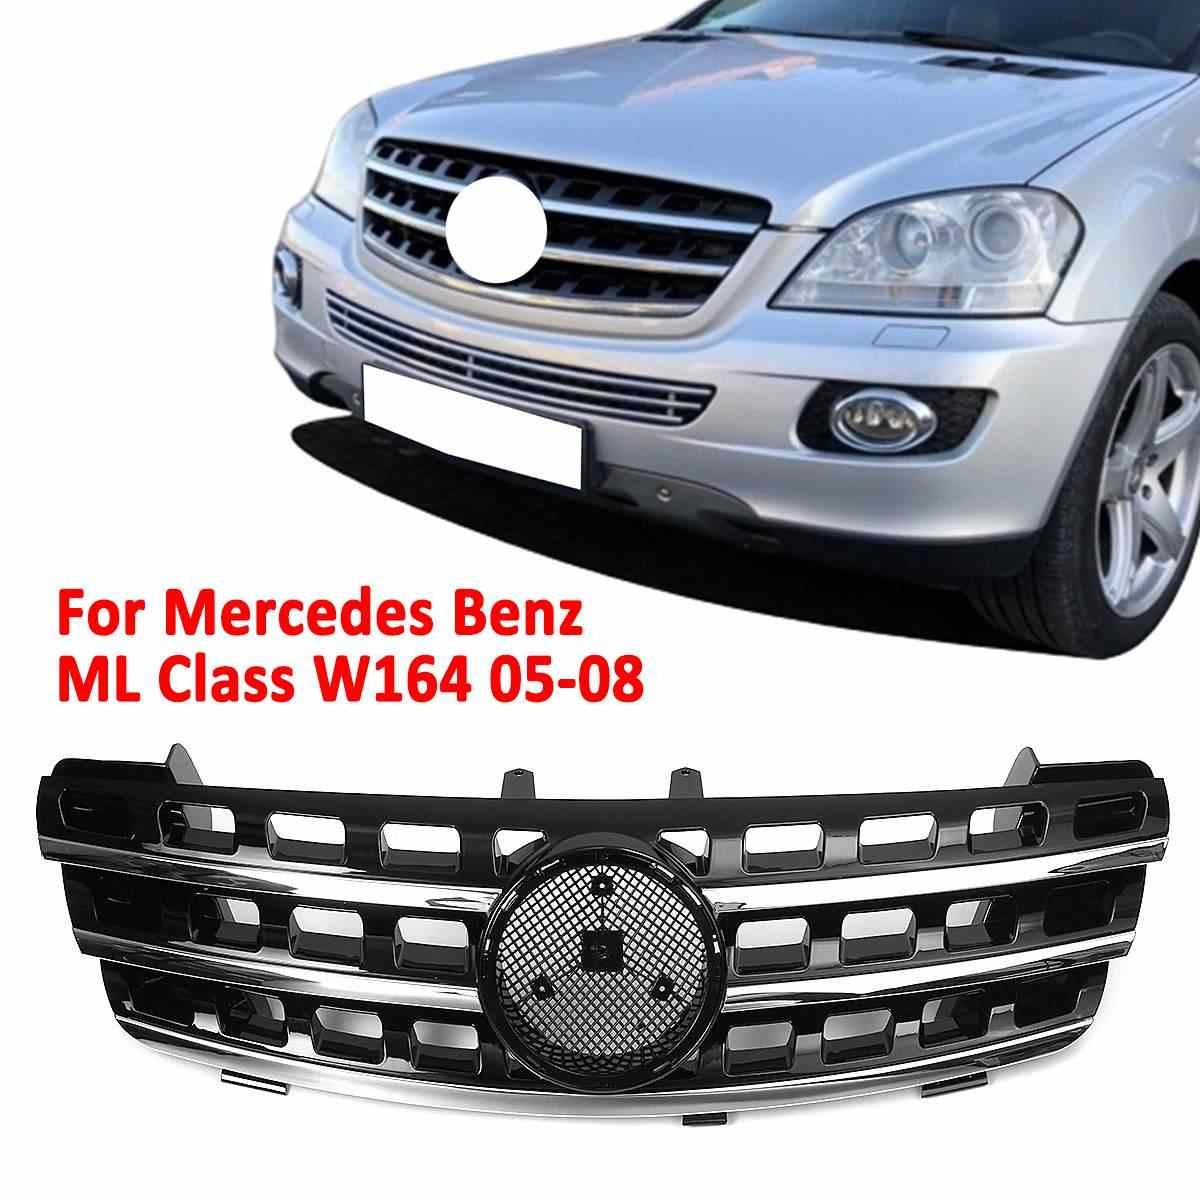 Front Bumper Upper Grill Grille Front Hood Racing Grill For Mercedes For Benz ML Class W164 ML320 ML350 ML550 2005-2008